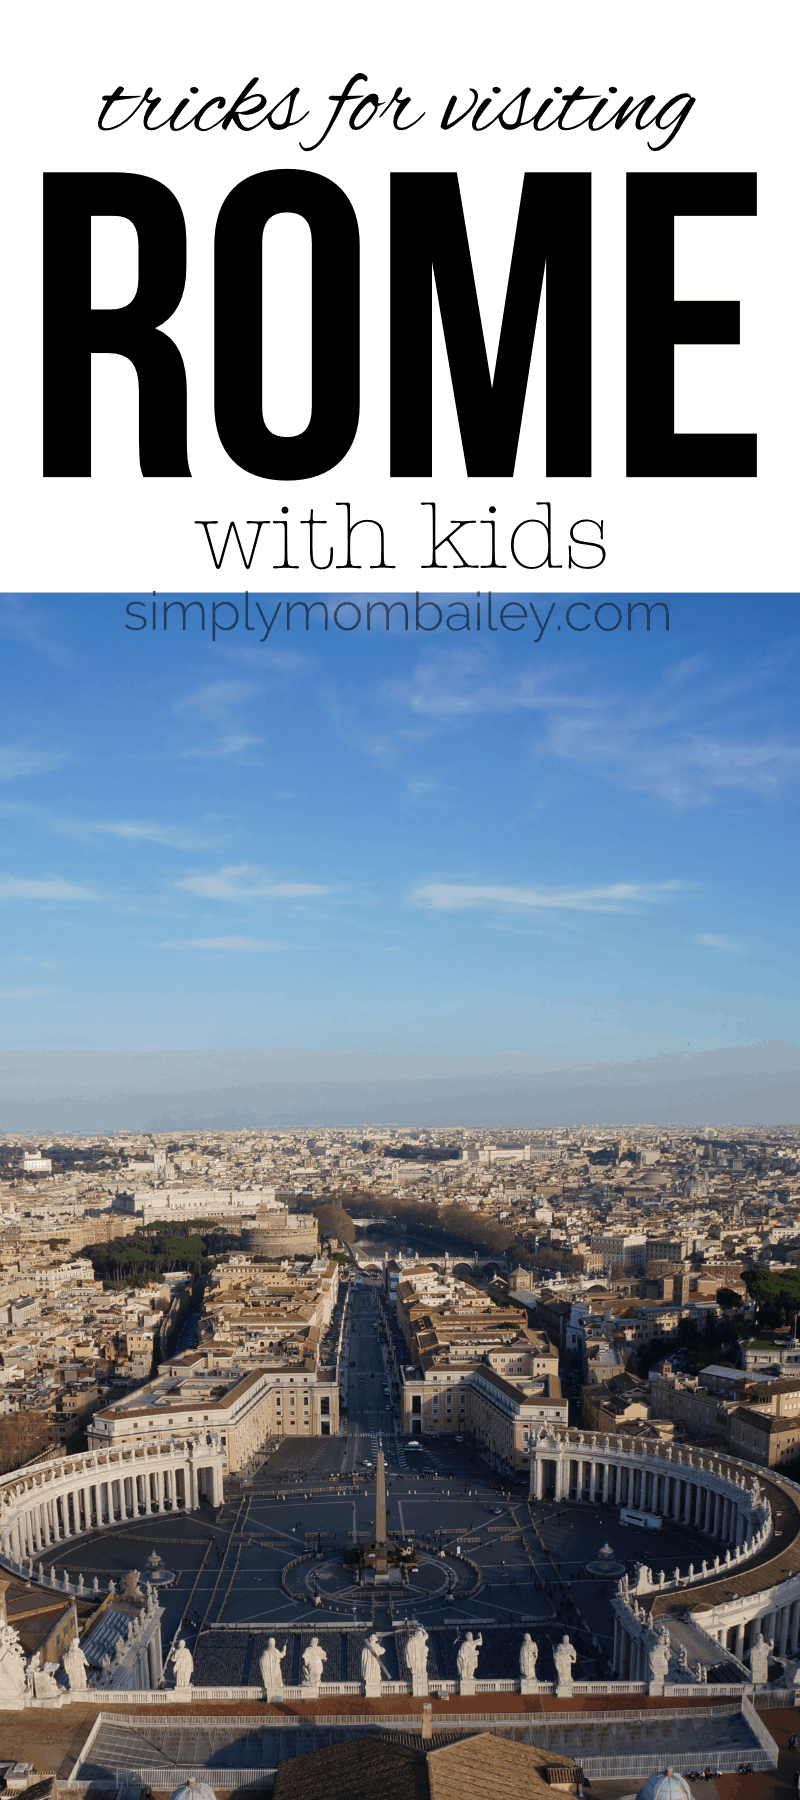 Trick and Tips for visiting Rome with baby #travelwithkids #havebabywilltravel #romeitaly #travelitaly #traveleurope #familytravel #europeantravel #letsgo #traveltips #traveltricks #placestogowithbaby